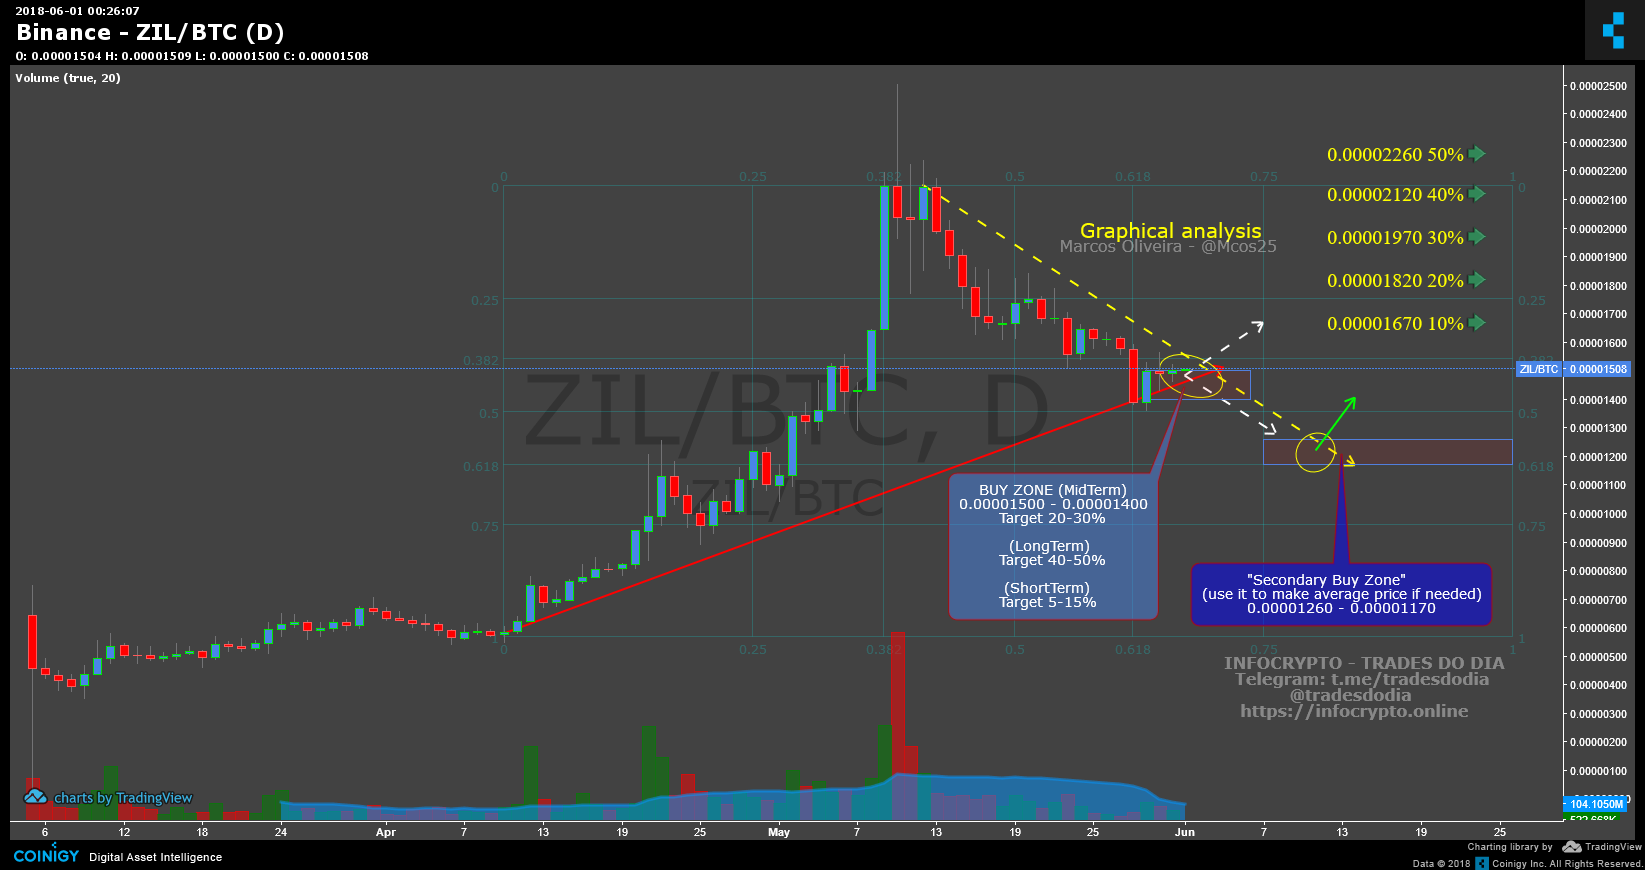 Binance ZIL/BTC Chart - Published on Coinigy.com on June 1st, 2018 on